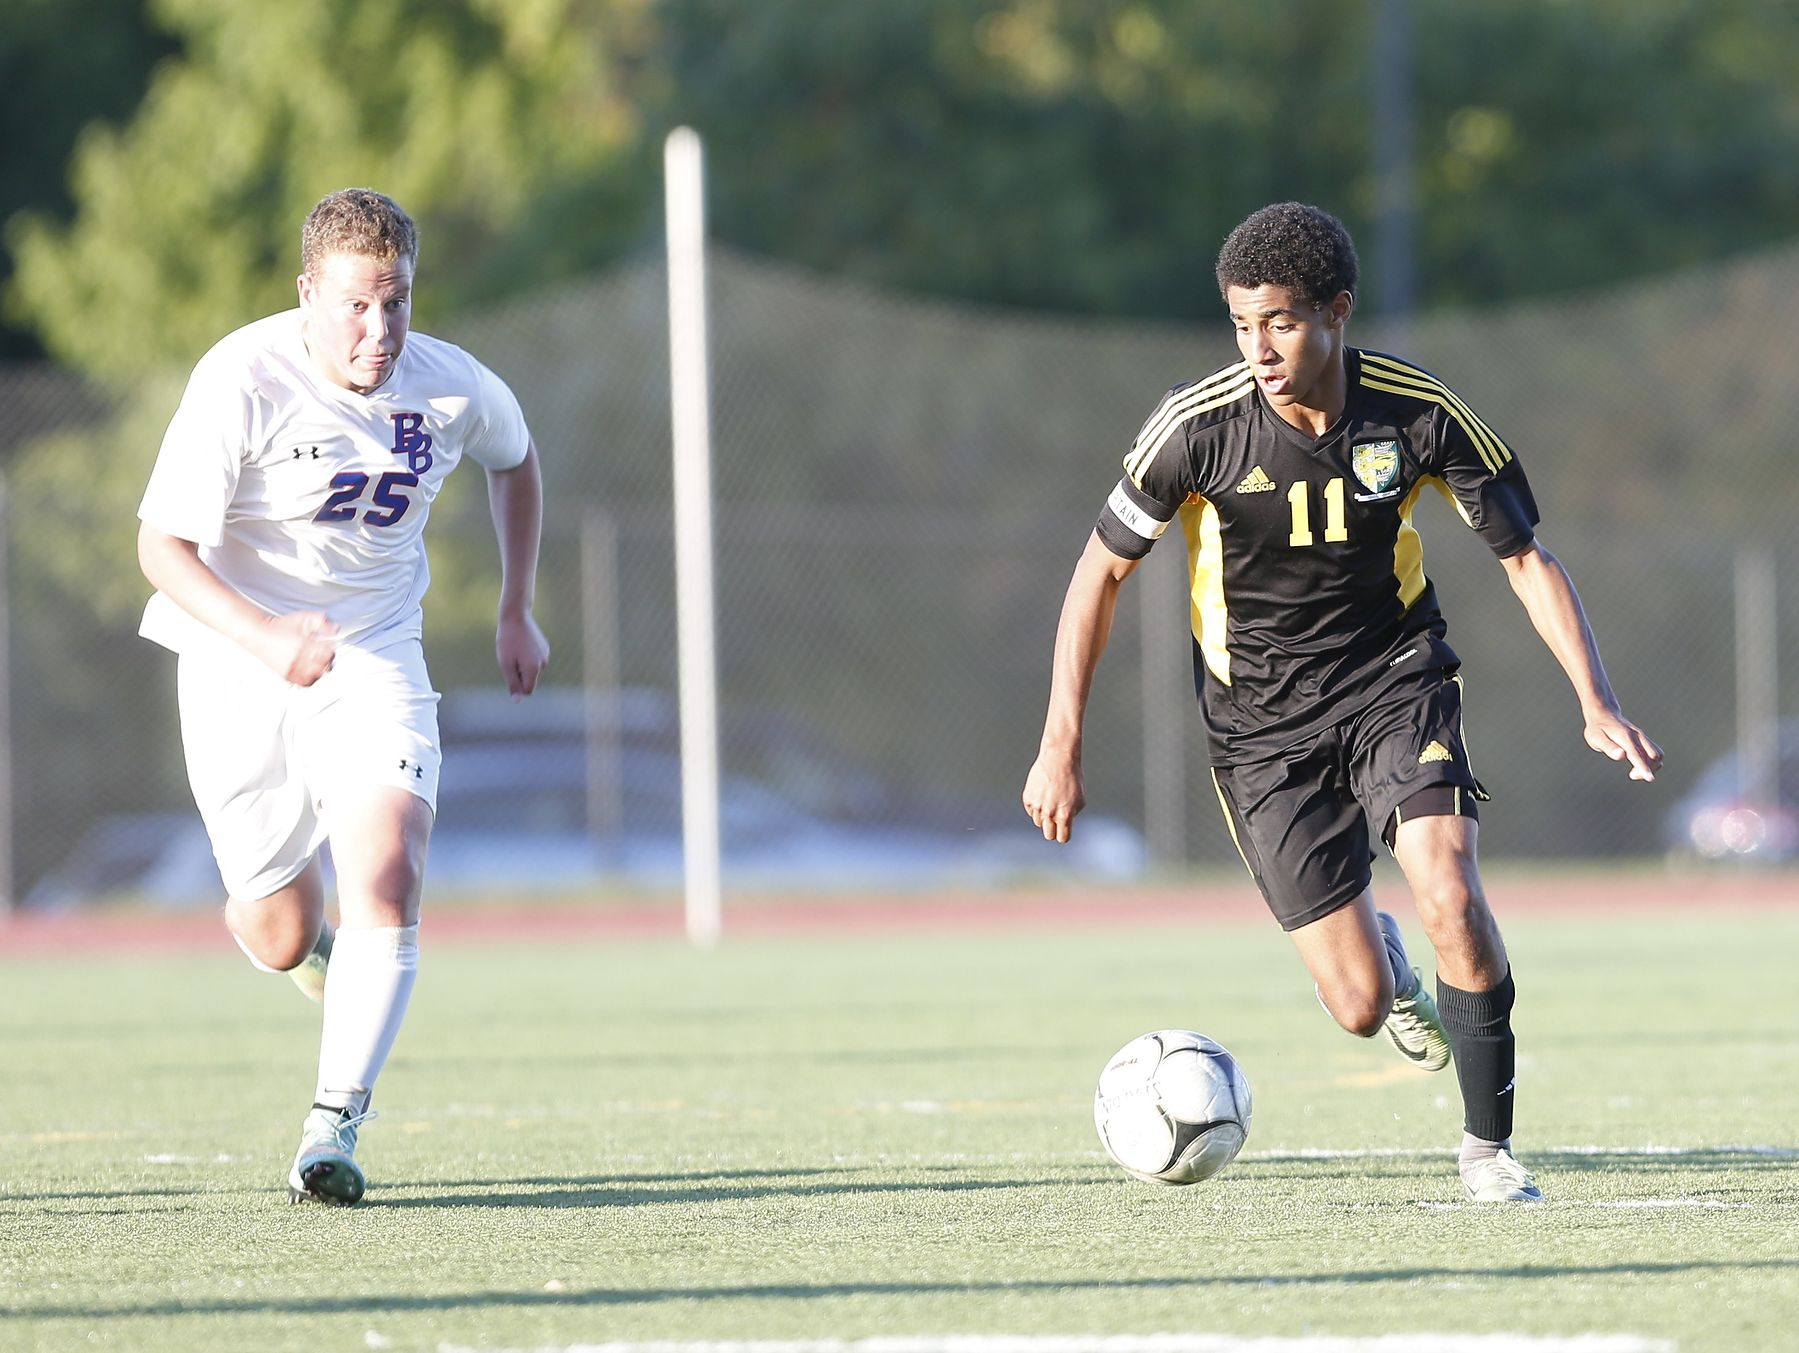 Hastings tops Blind Brook 3-0 in boys soccer action at Blind Brook High School in Rye Brook on Tuesday, October 11, 2016.